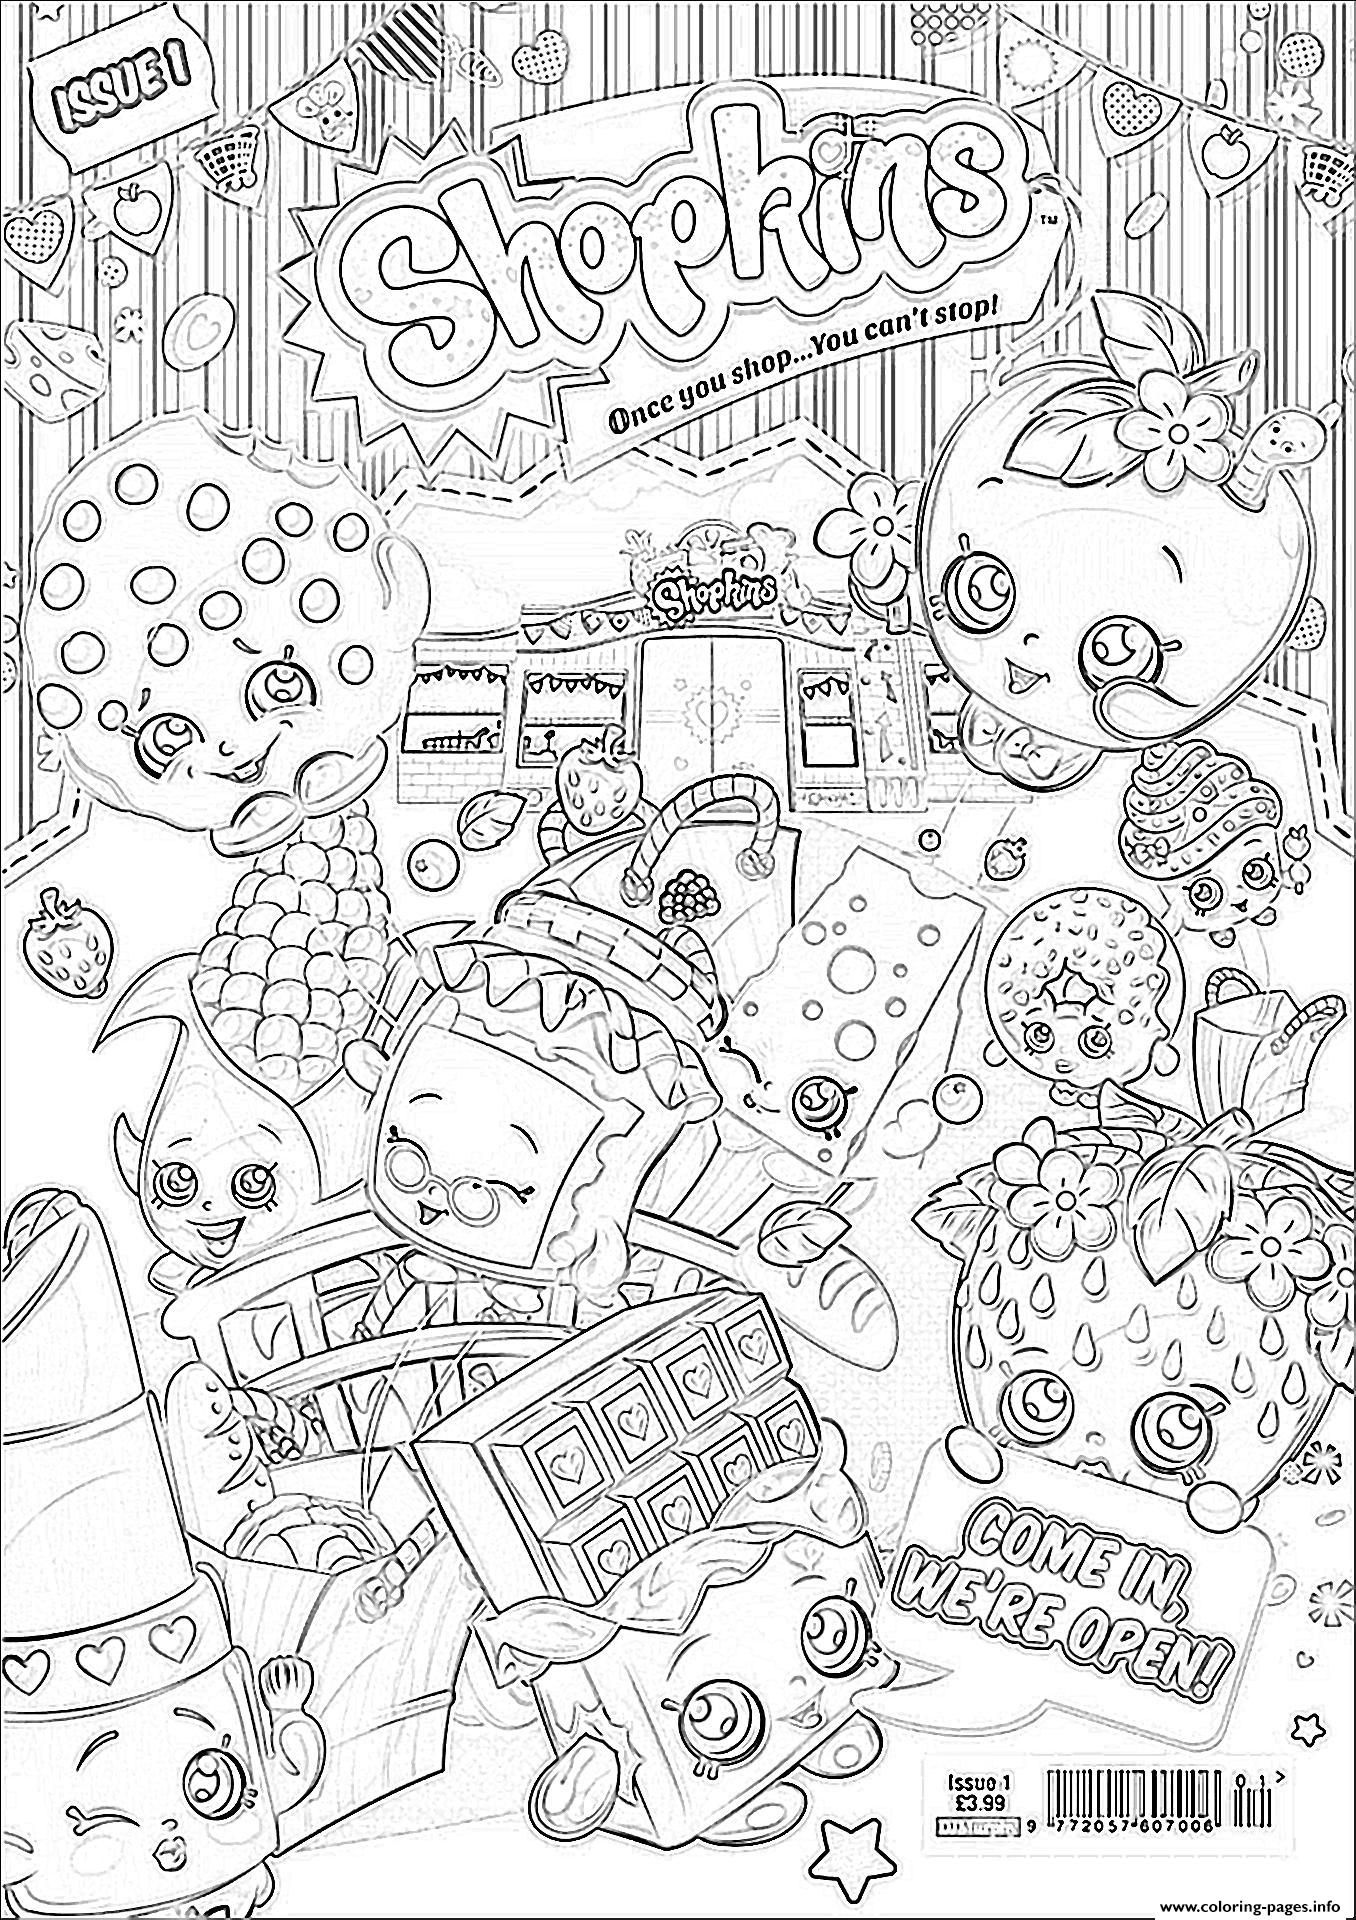 Shopkins We Are Open Coloring Pages Printable And Book To Print For Free Find More Online Kids Adults Of